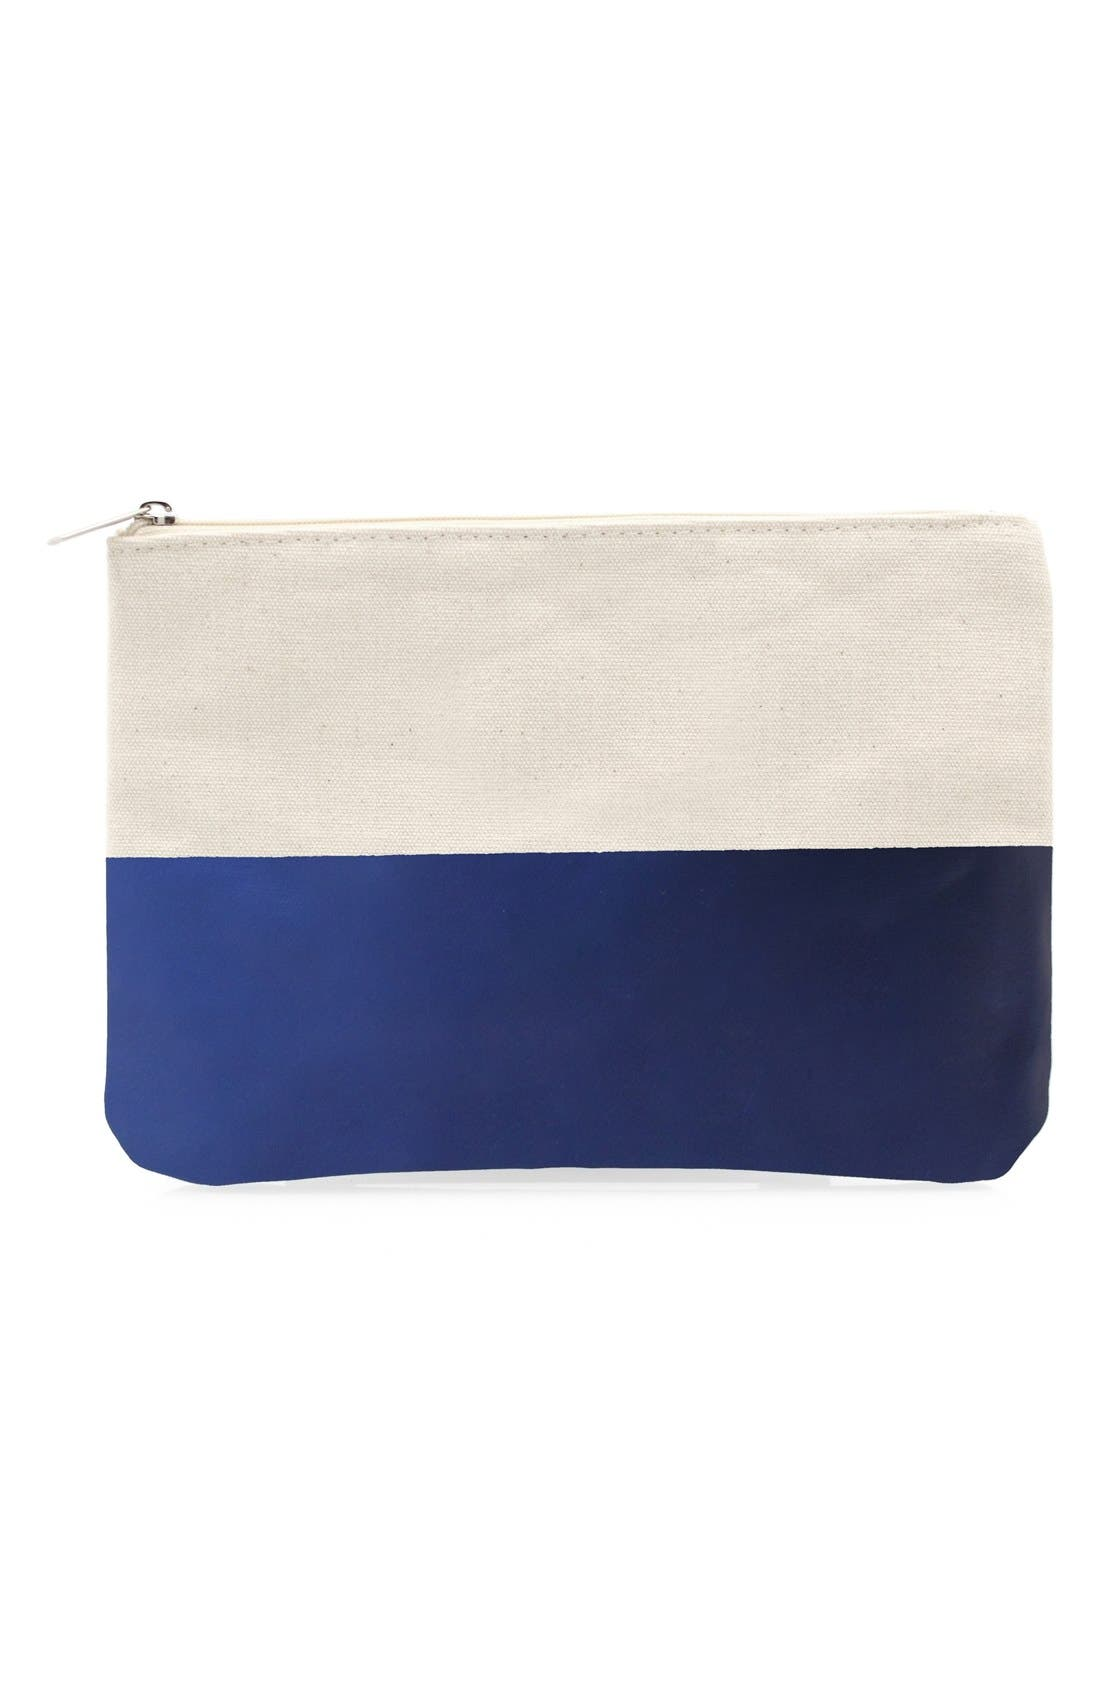 Personalized Canvas Clutch,                         Main,                         color, 400